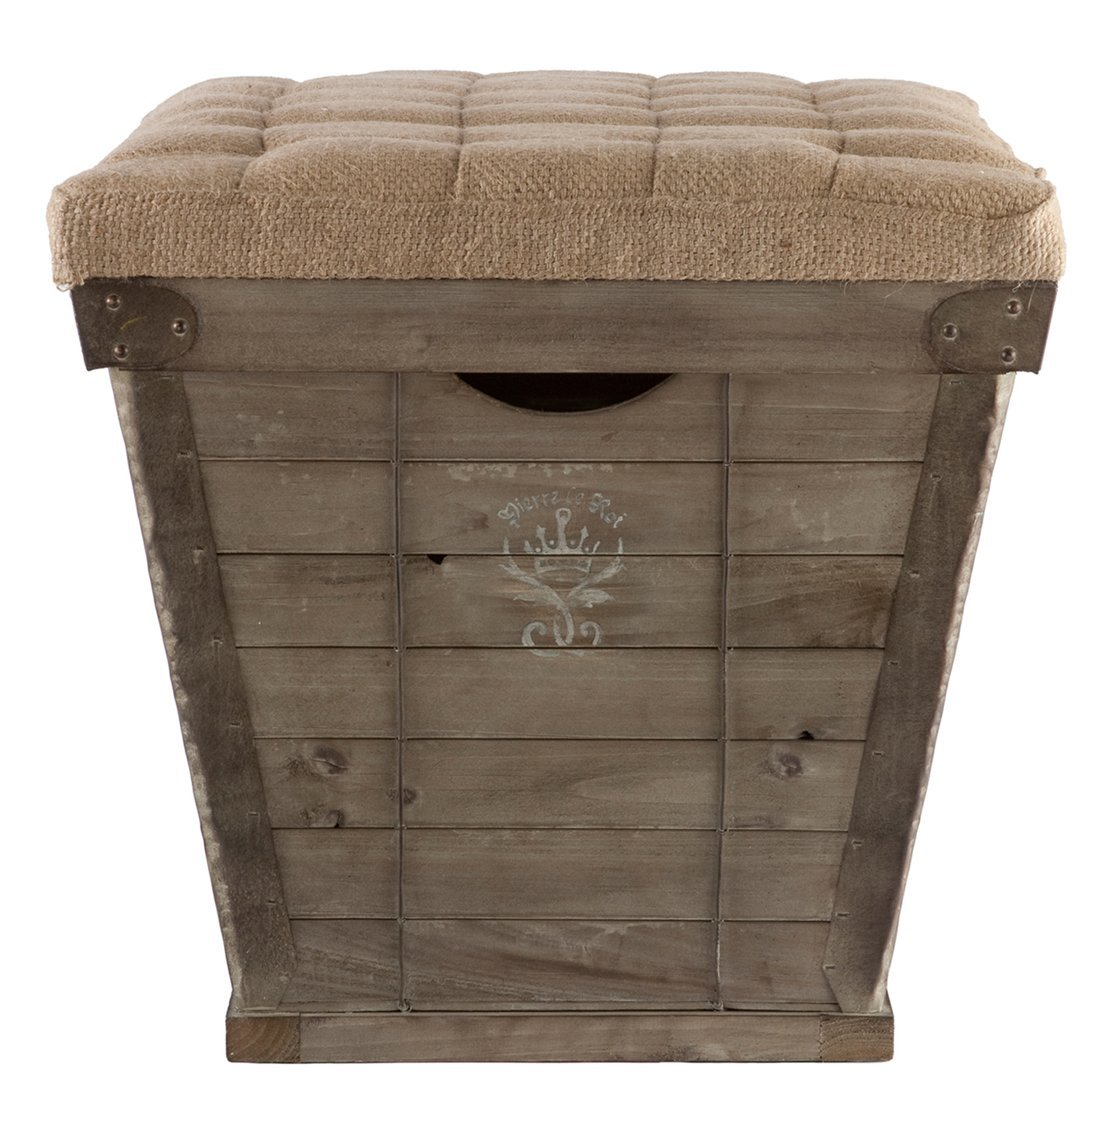 Amazon.com: French Country White Lettering Long Storage Crate Burlap Ottoman:  Kitchen & Dining - Amazon.com: French Country White Lettering Long Storage Crate